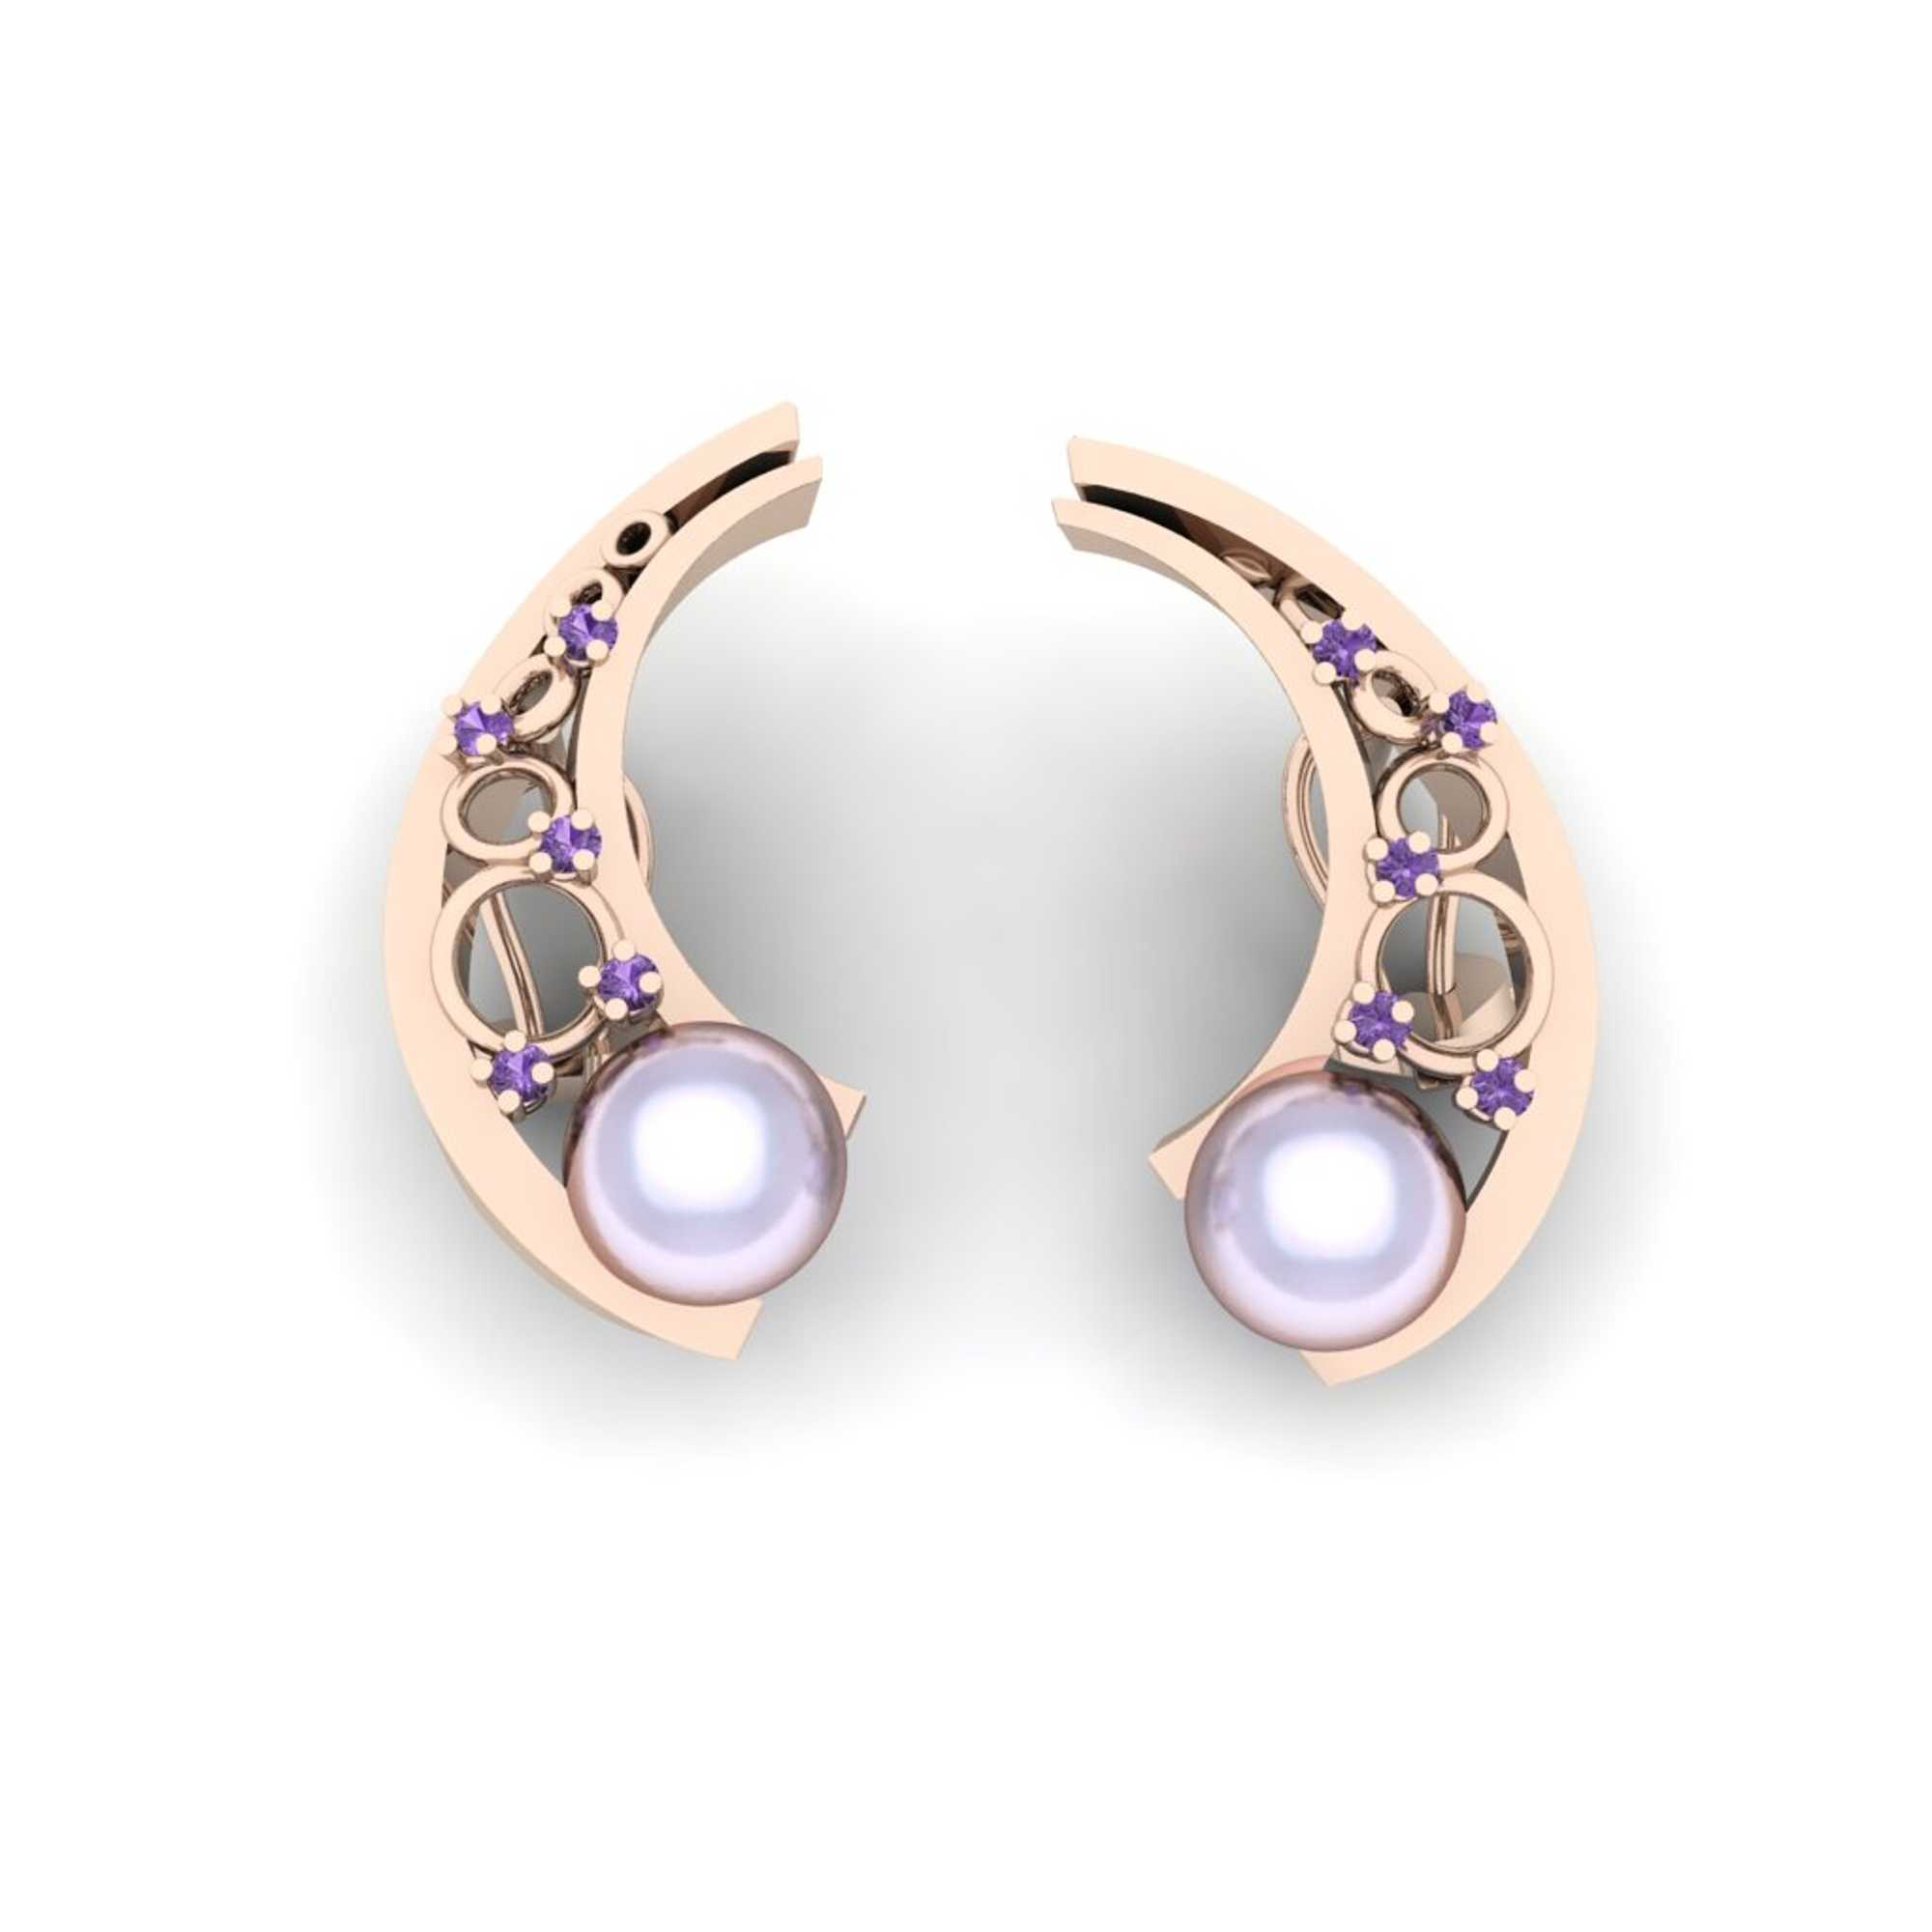 Cercles Earrings